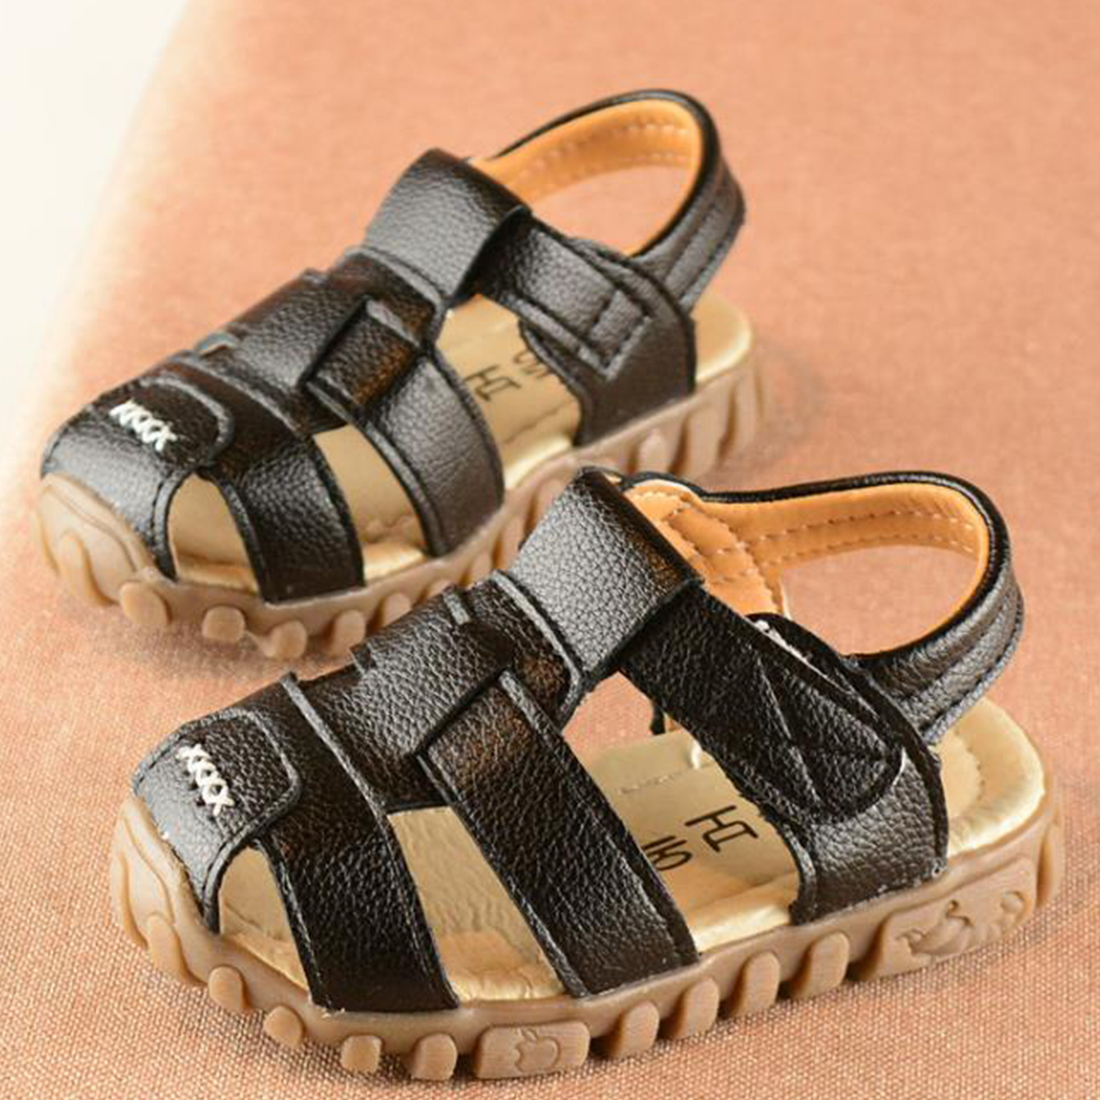 Kids Sandals Sandals Boys Sandals Fashionable Velcro Design Breathable Children's Leather Shoes Summer Wear